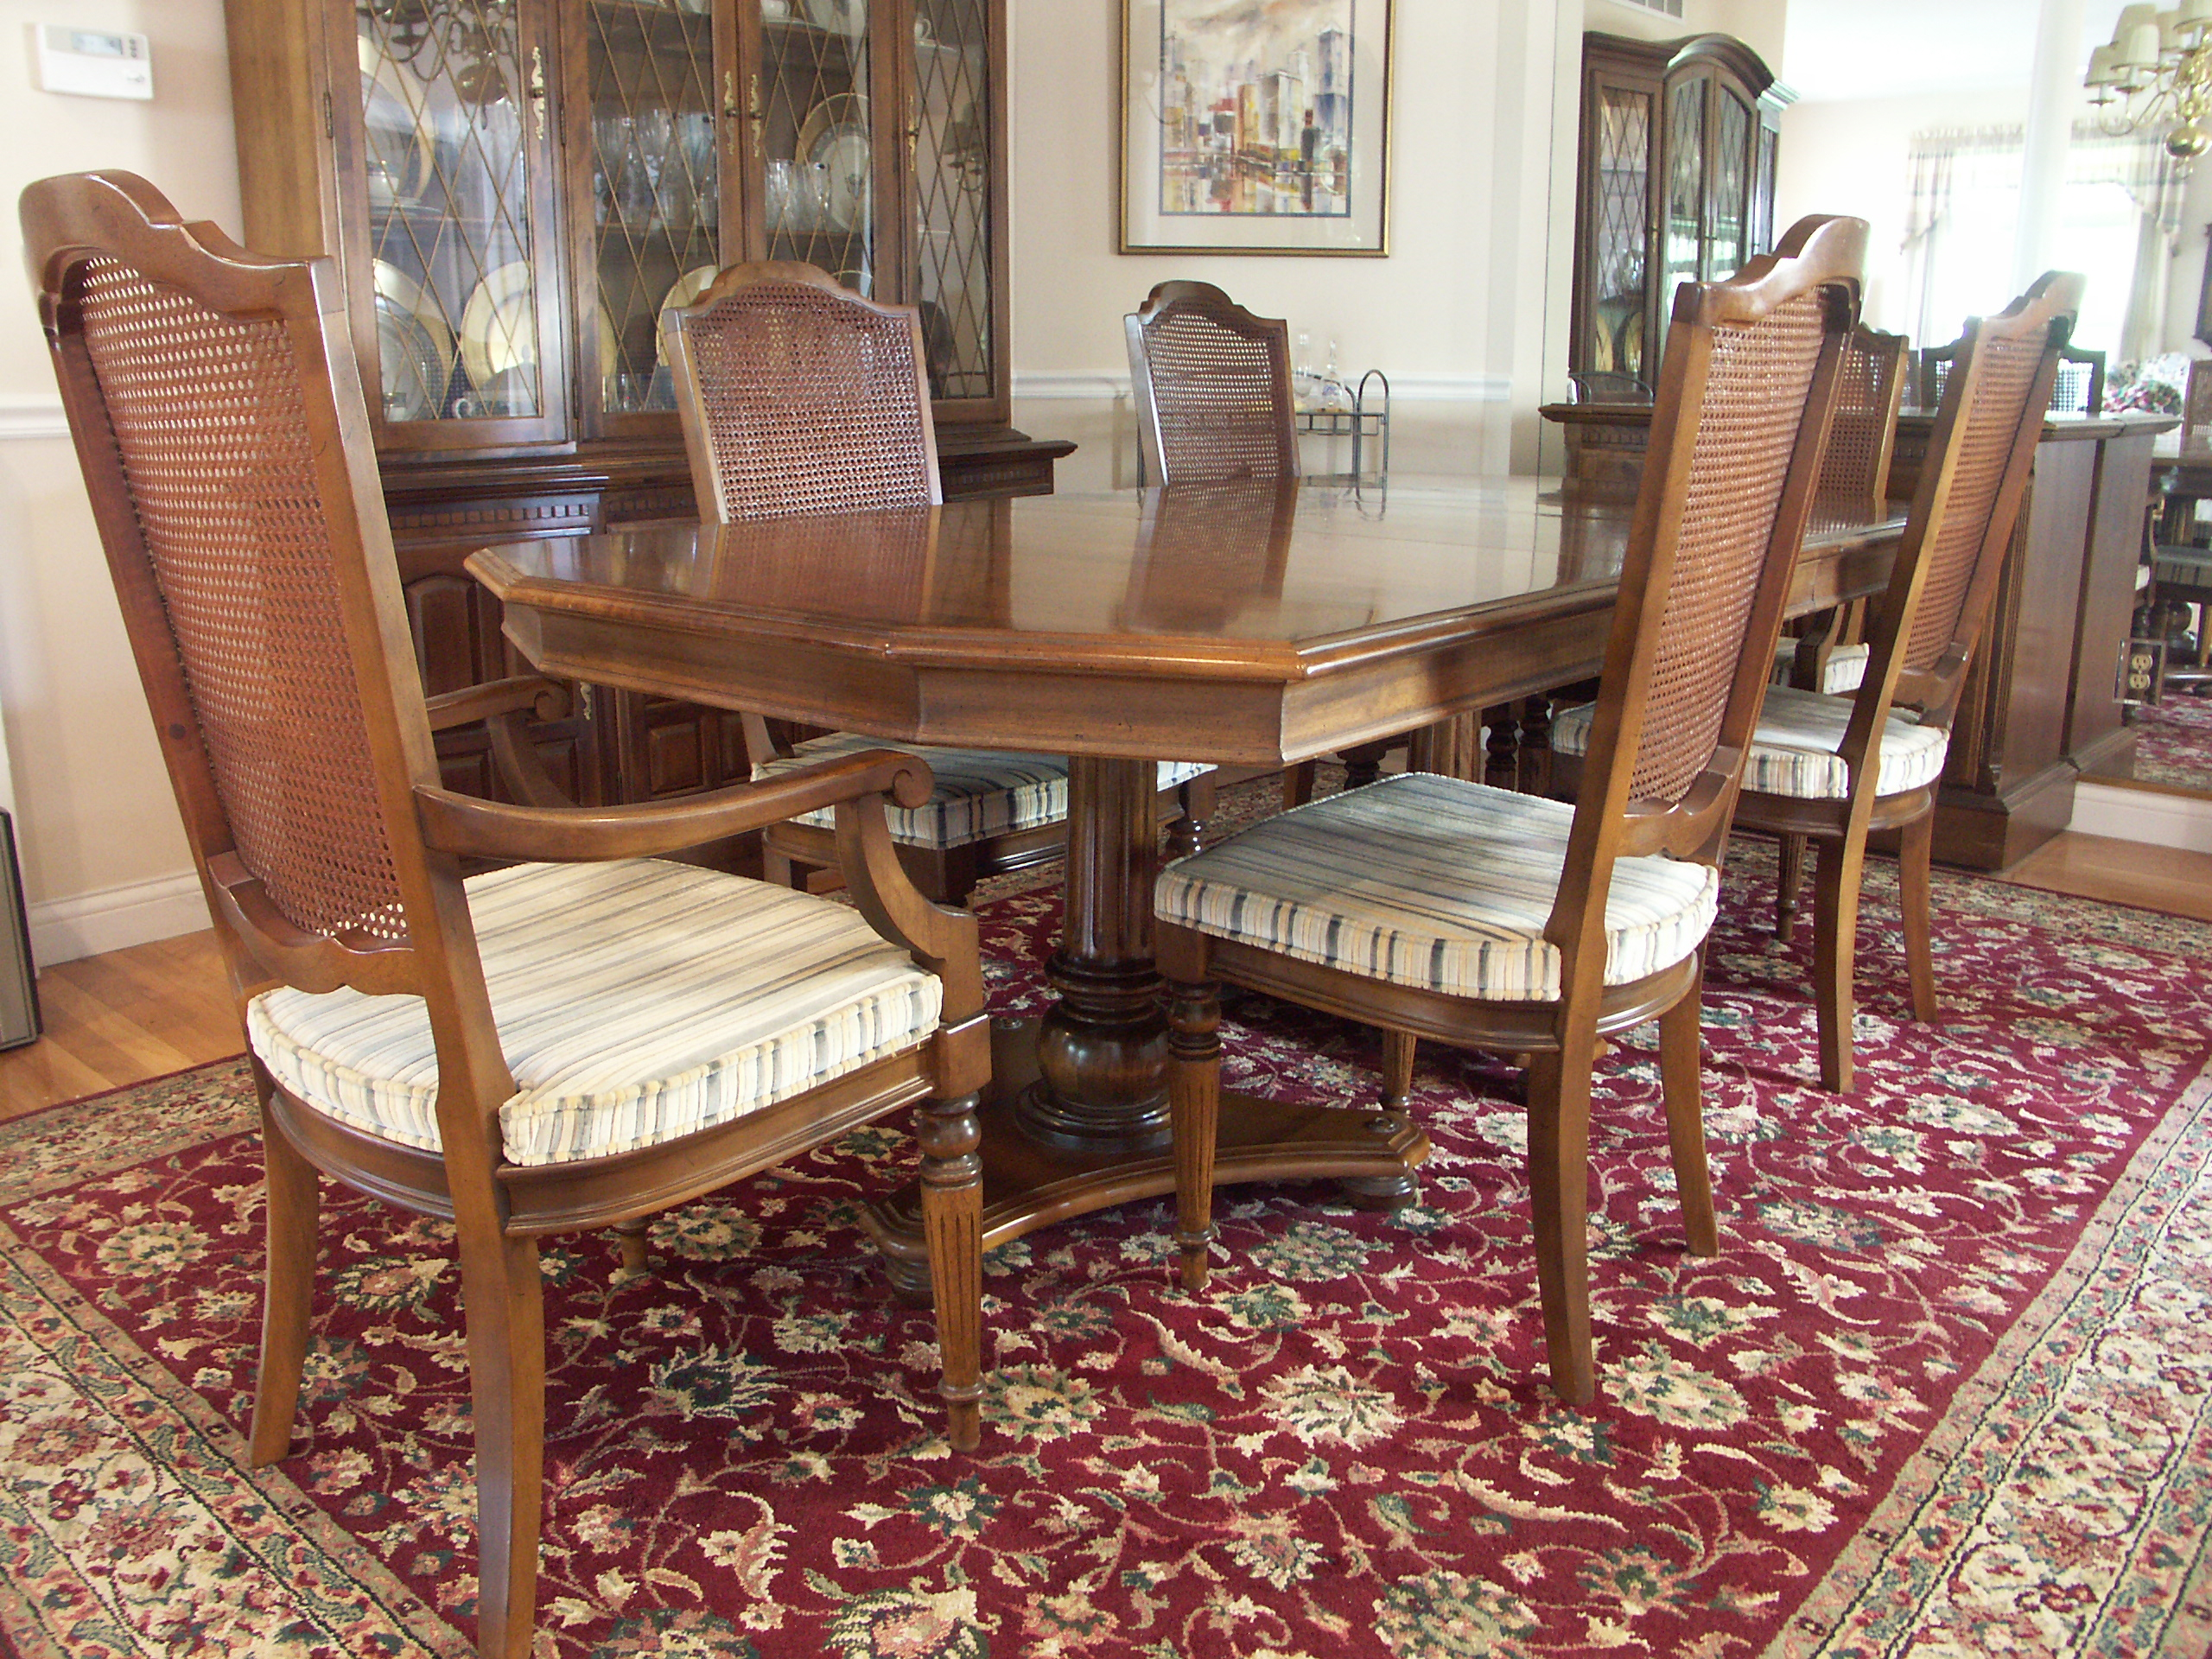 ethan allen dining table Ethan Allen Dining Table and Six Chairs : EBTH ethan allen dining table